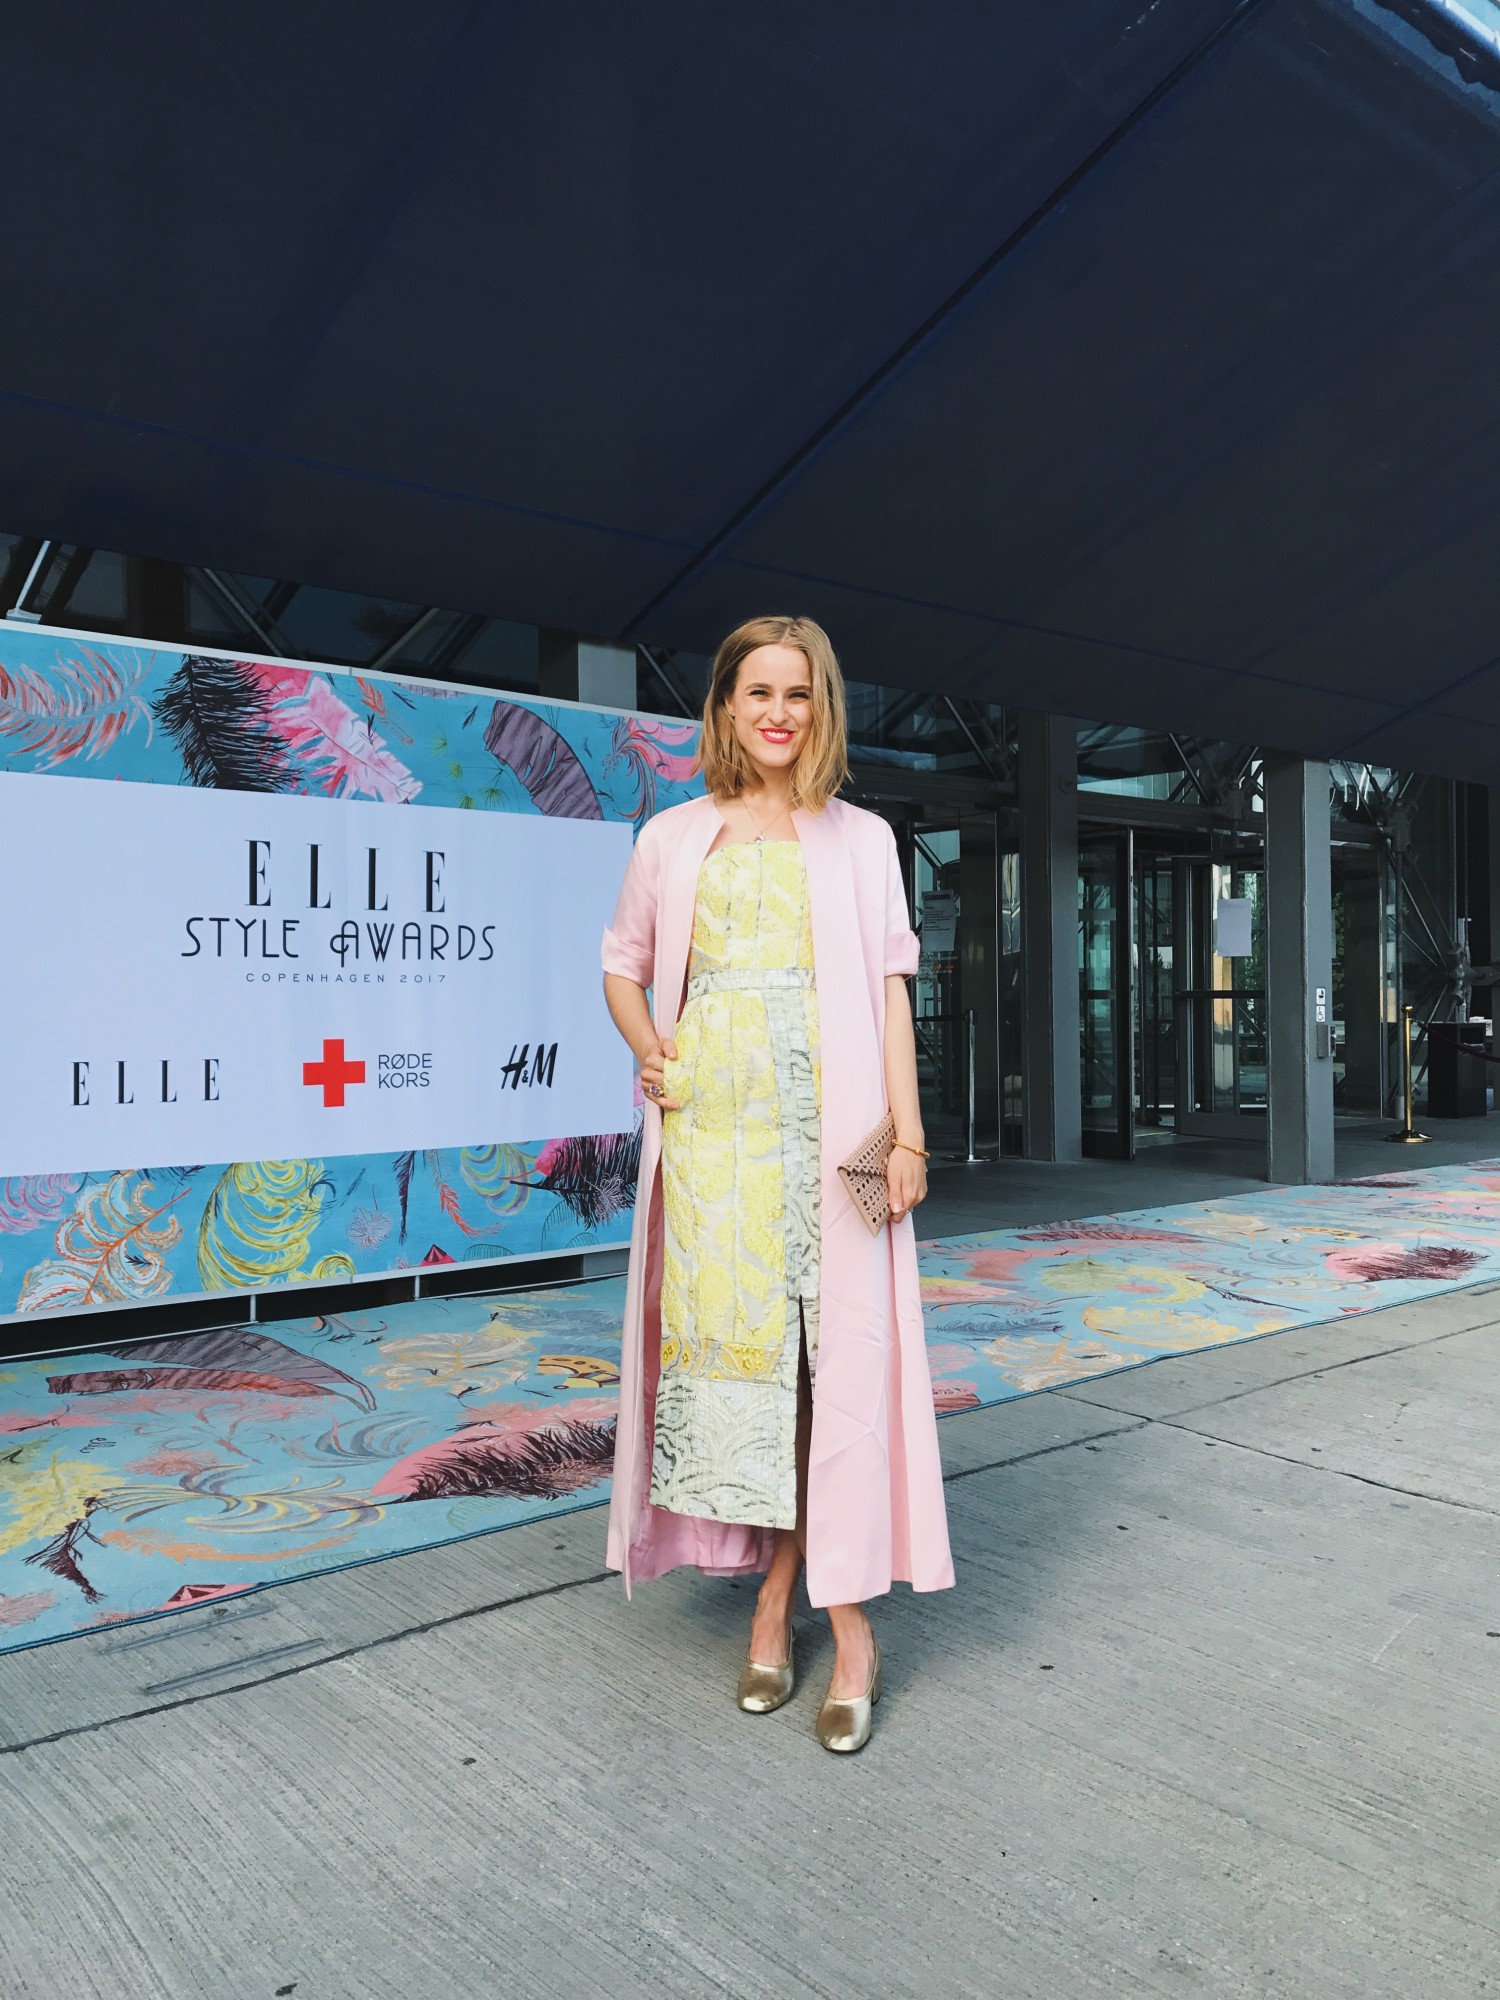 Rockpaperdresses, cathrine Widunok Wichmand, Elle style awards 2017